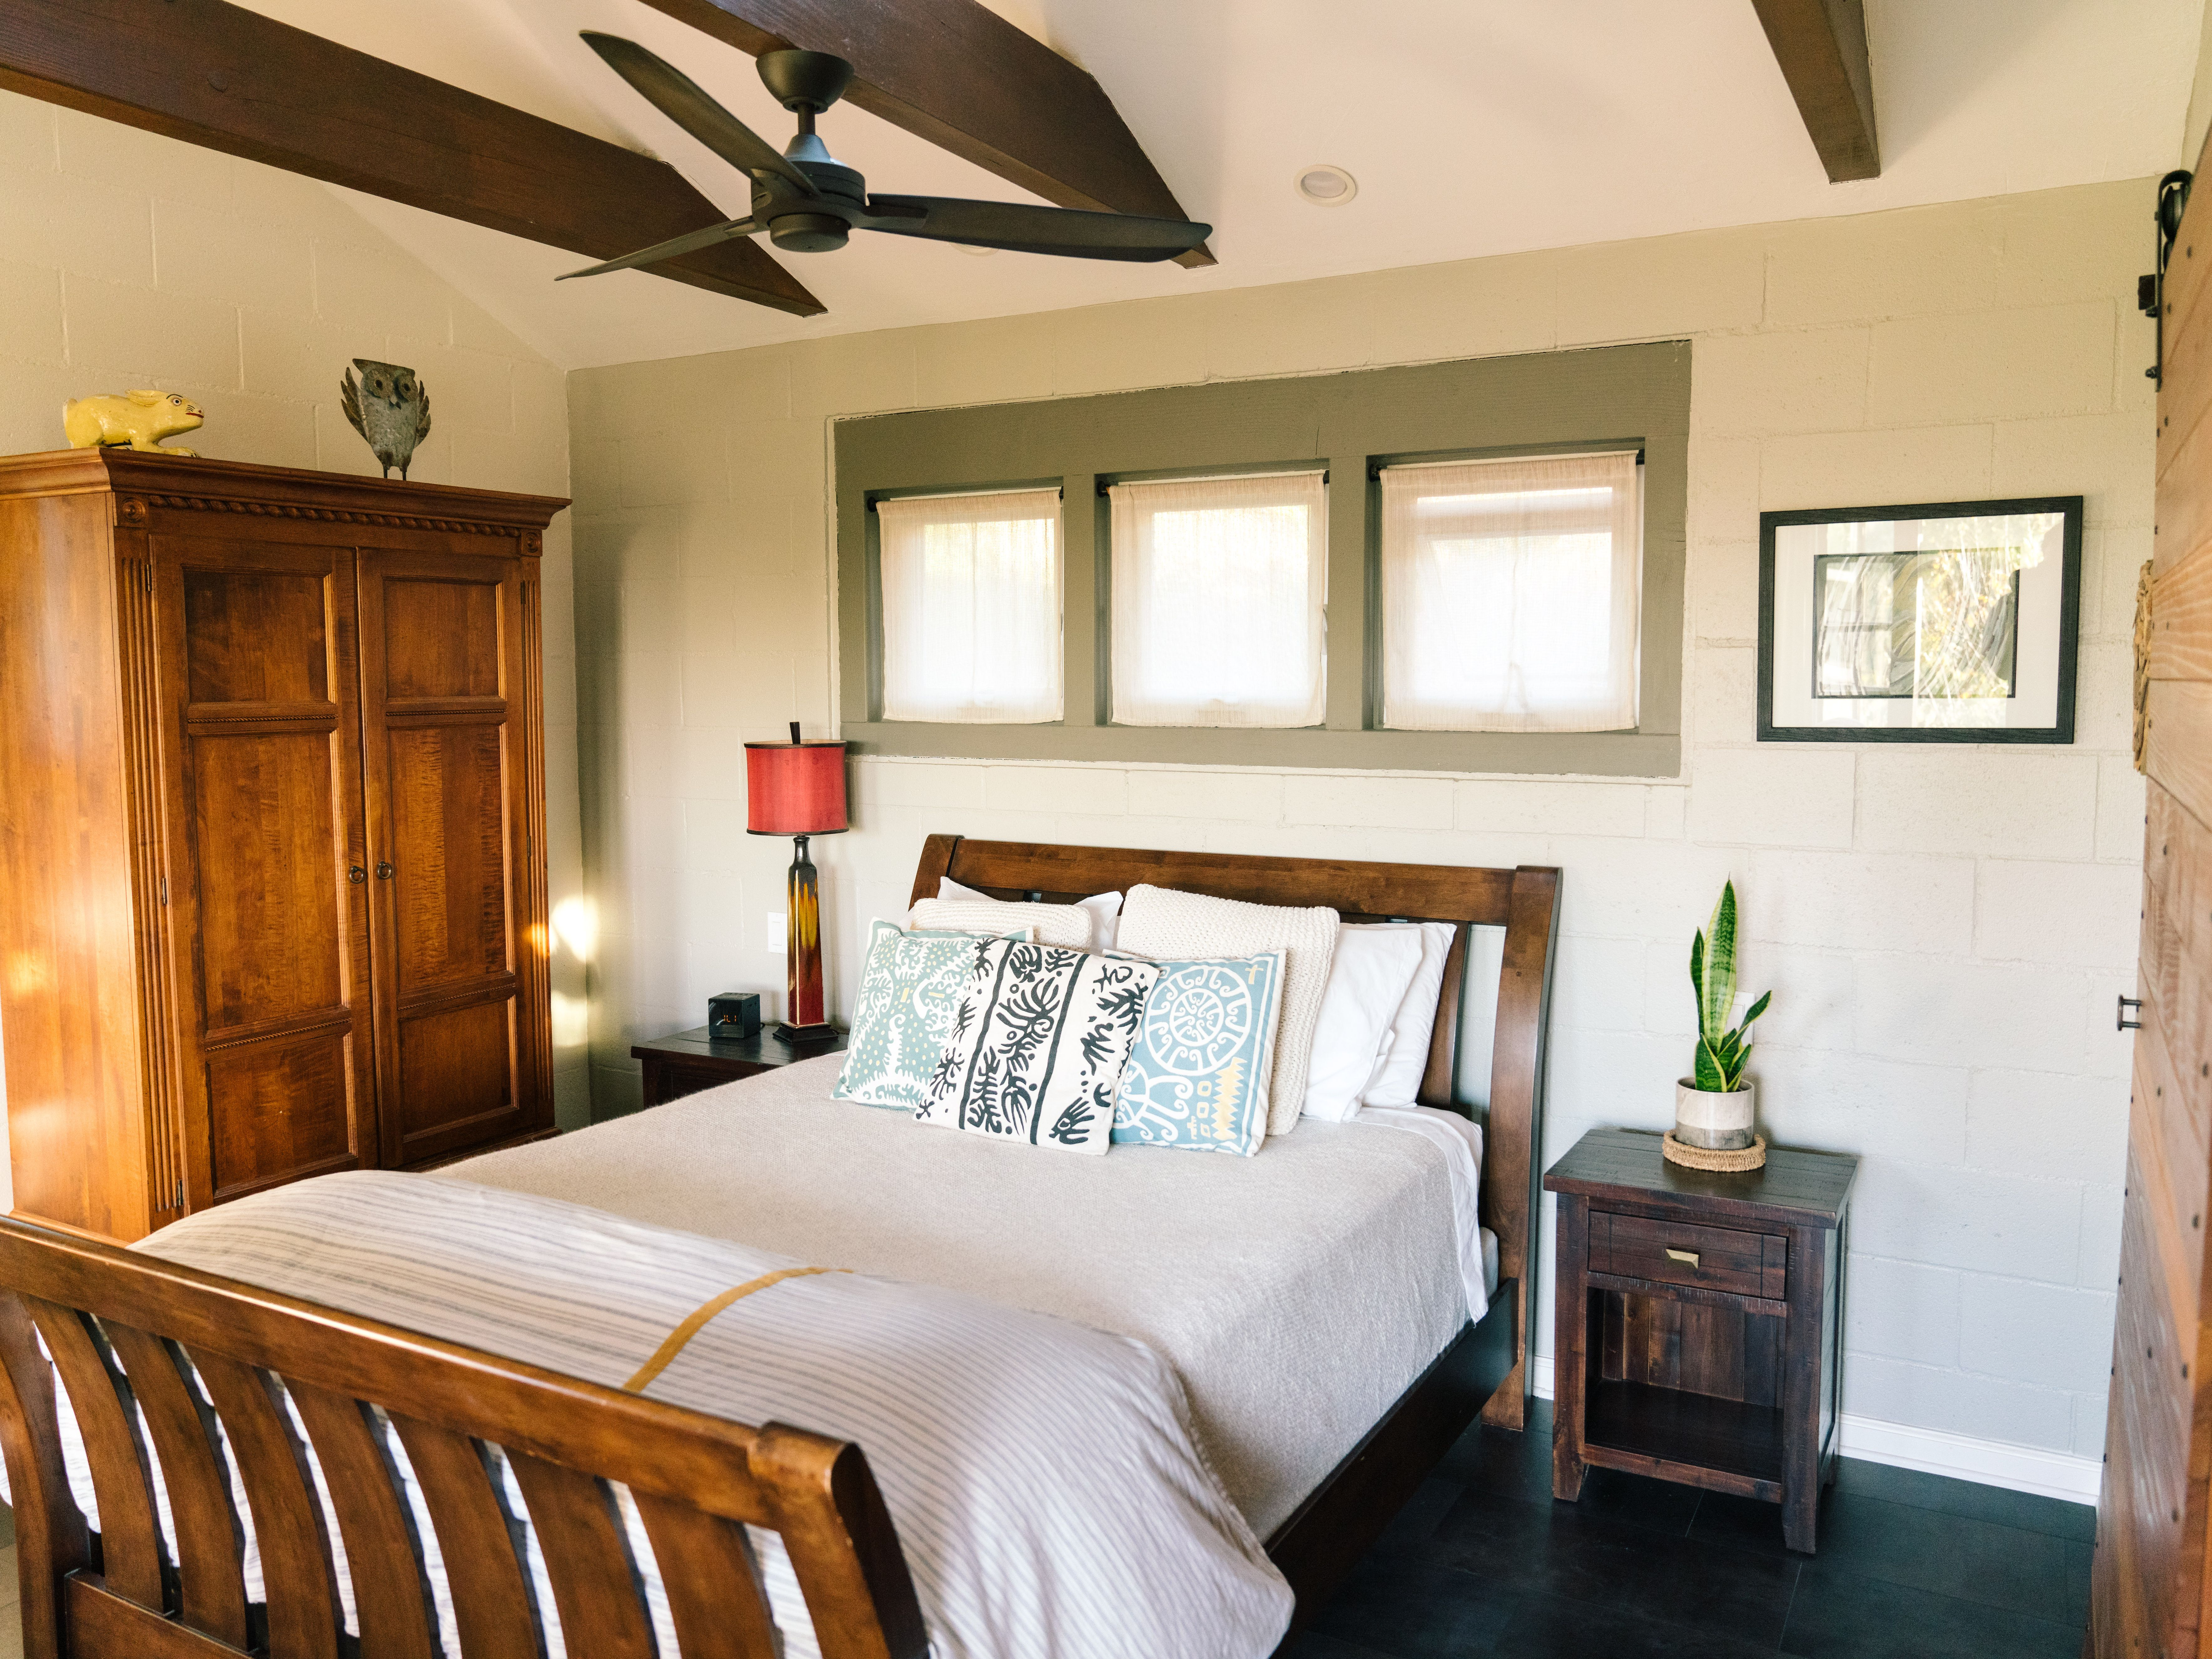 Tips For Mixing Wood Finishes In Your Home Decor